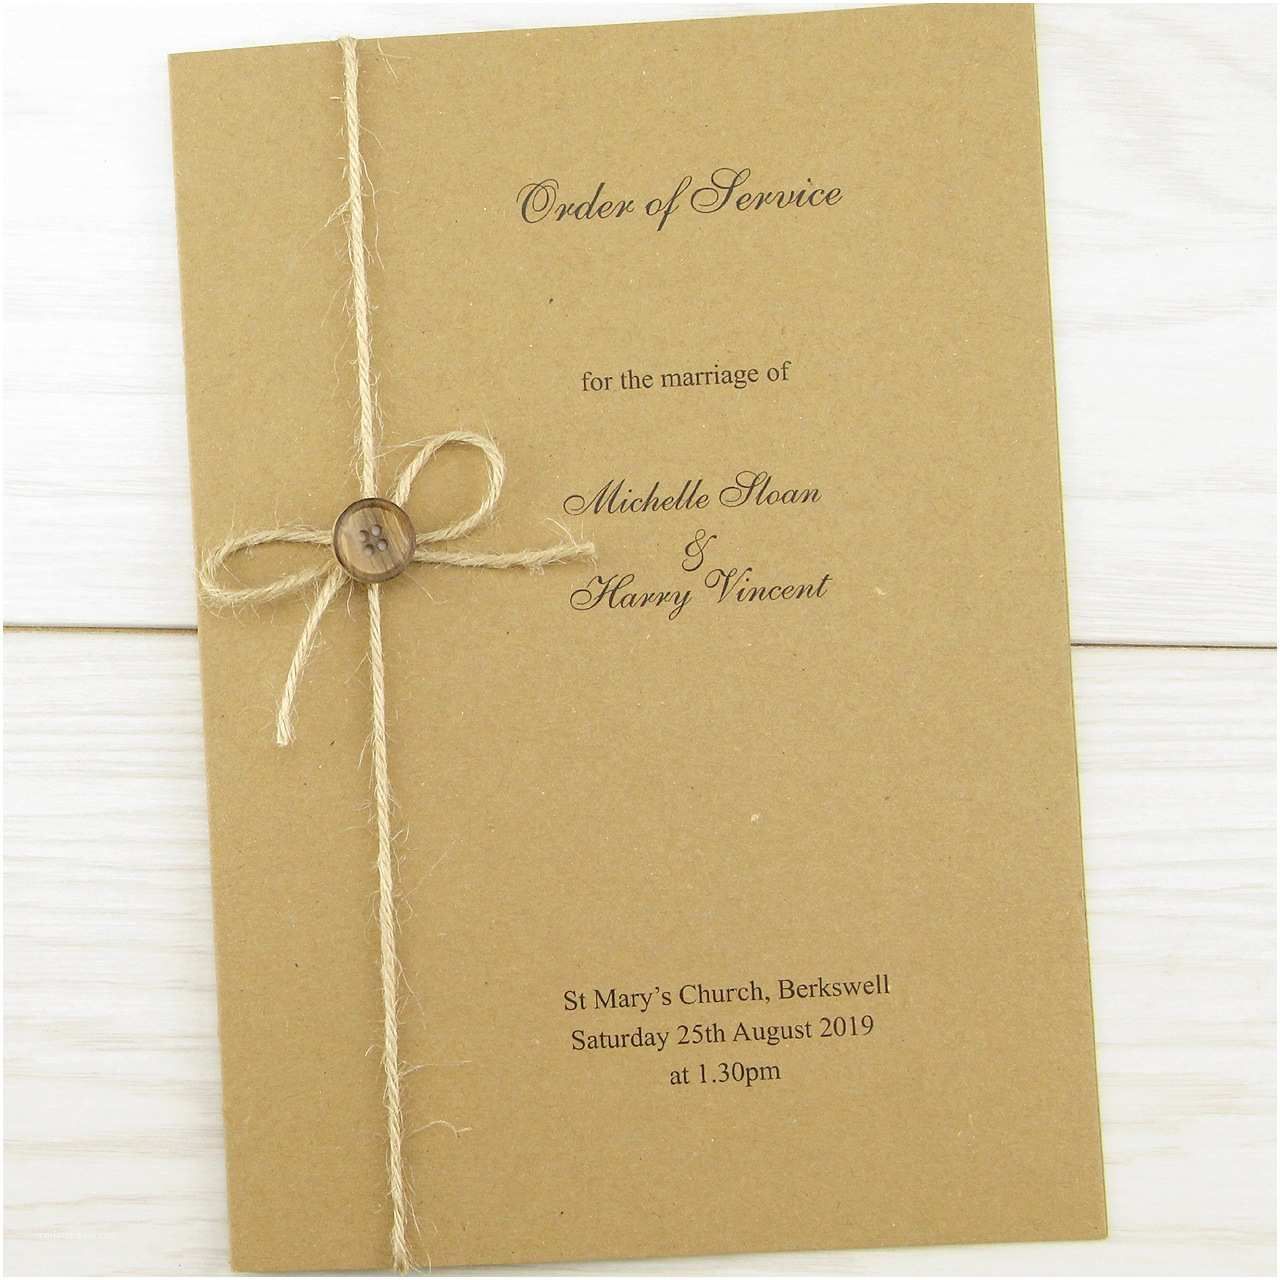 Cheap Wedding Reception Invitations Hd Wallpapers Cheap Personalised Wedding Invitations Uk